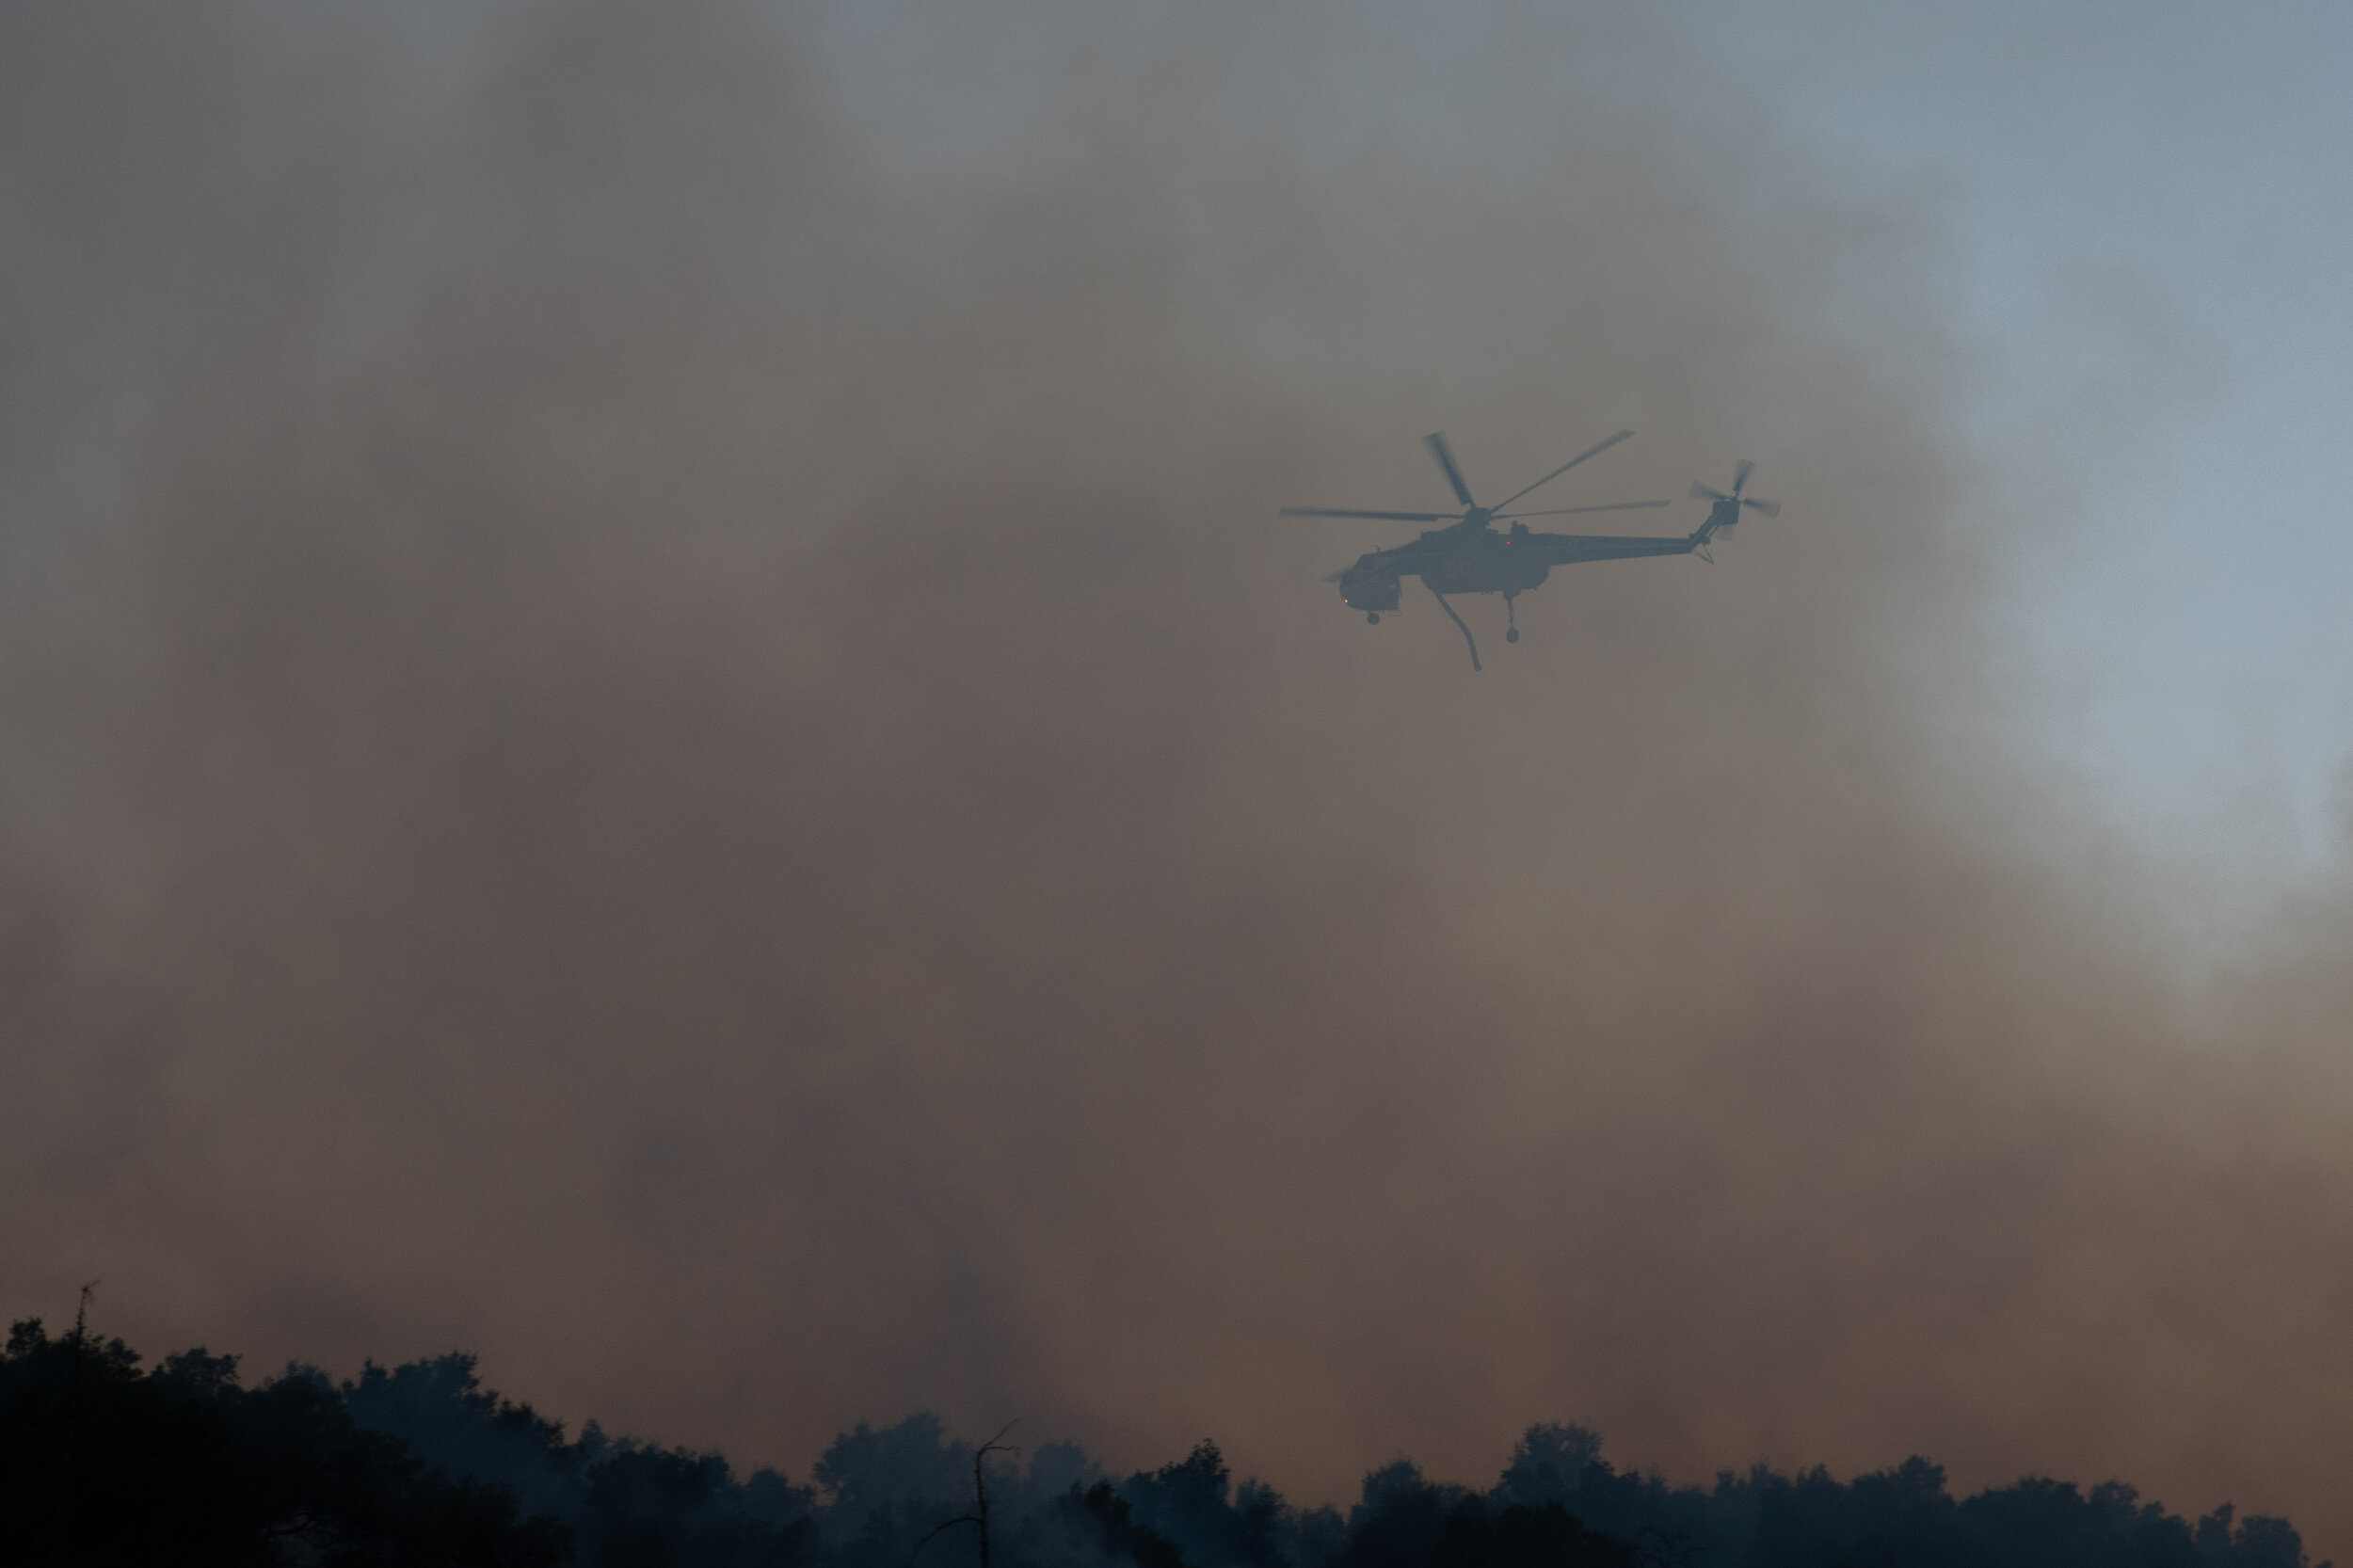 A helitanker behind a cloud of smoke just before it drops water on the Saddlerige Fire just off interstate 5 near Newhall Calif. on Friday, Oct. 11, 2019. (Conner Savage/The Corsair)